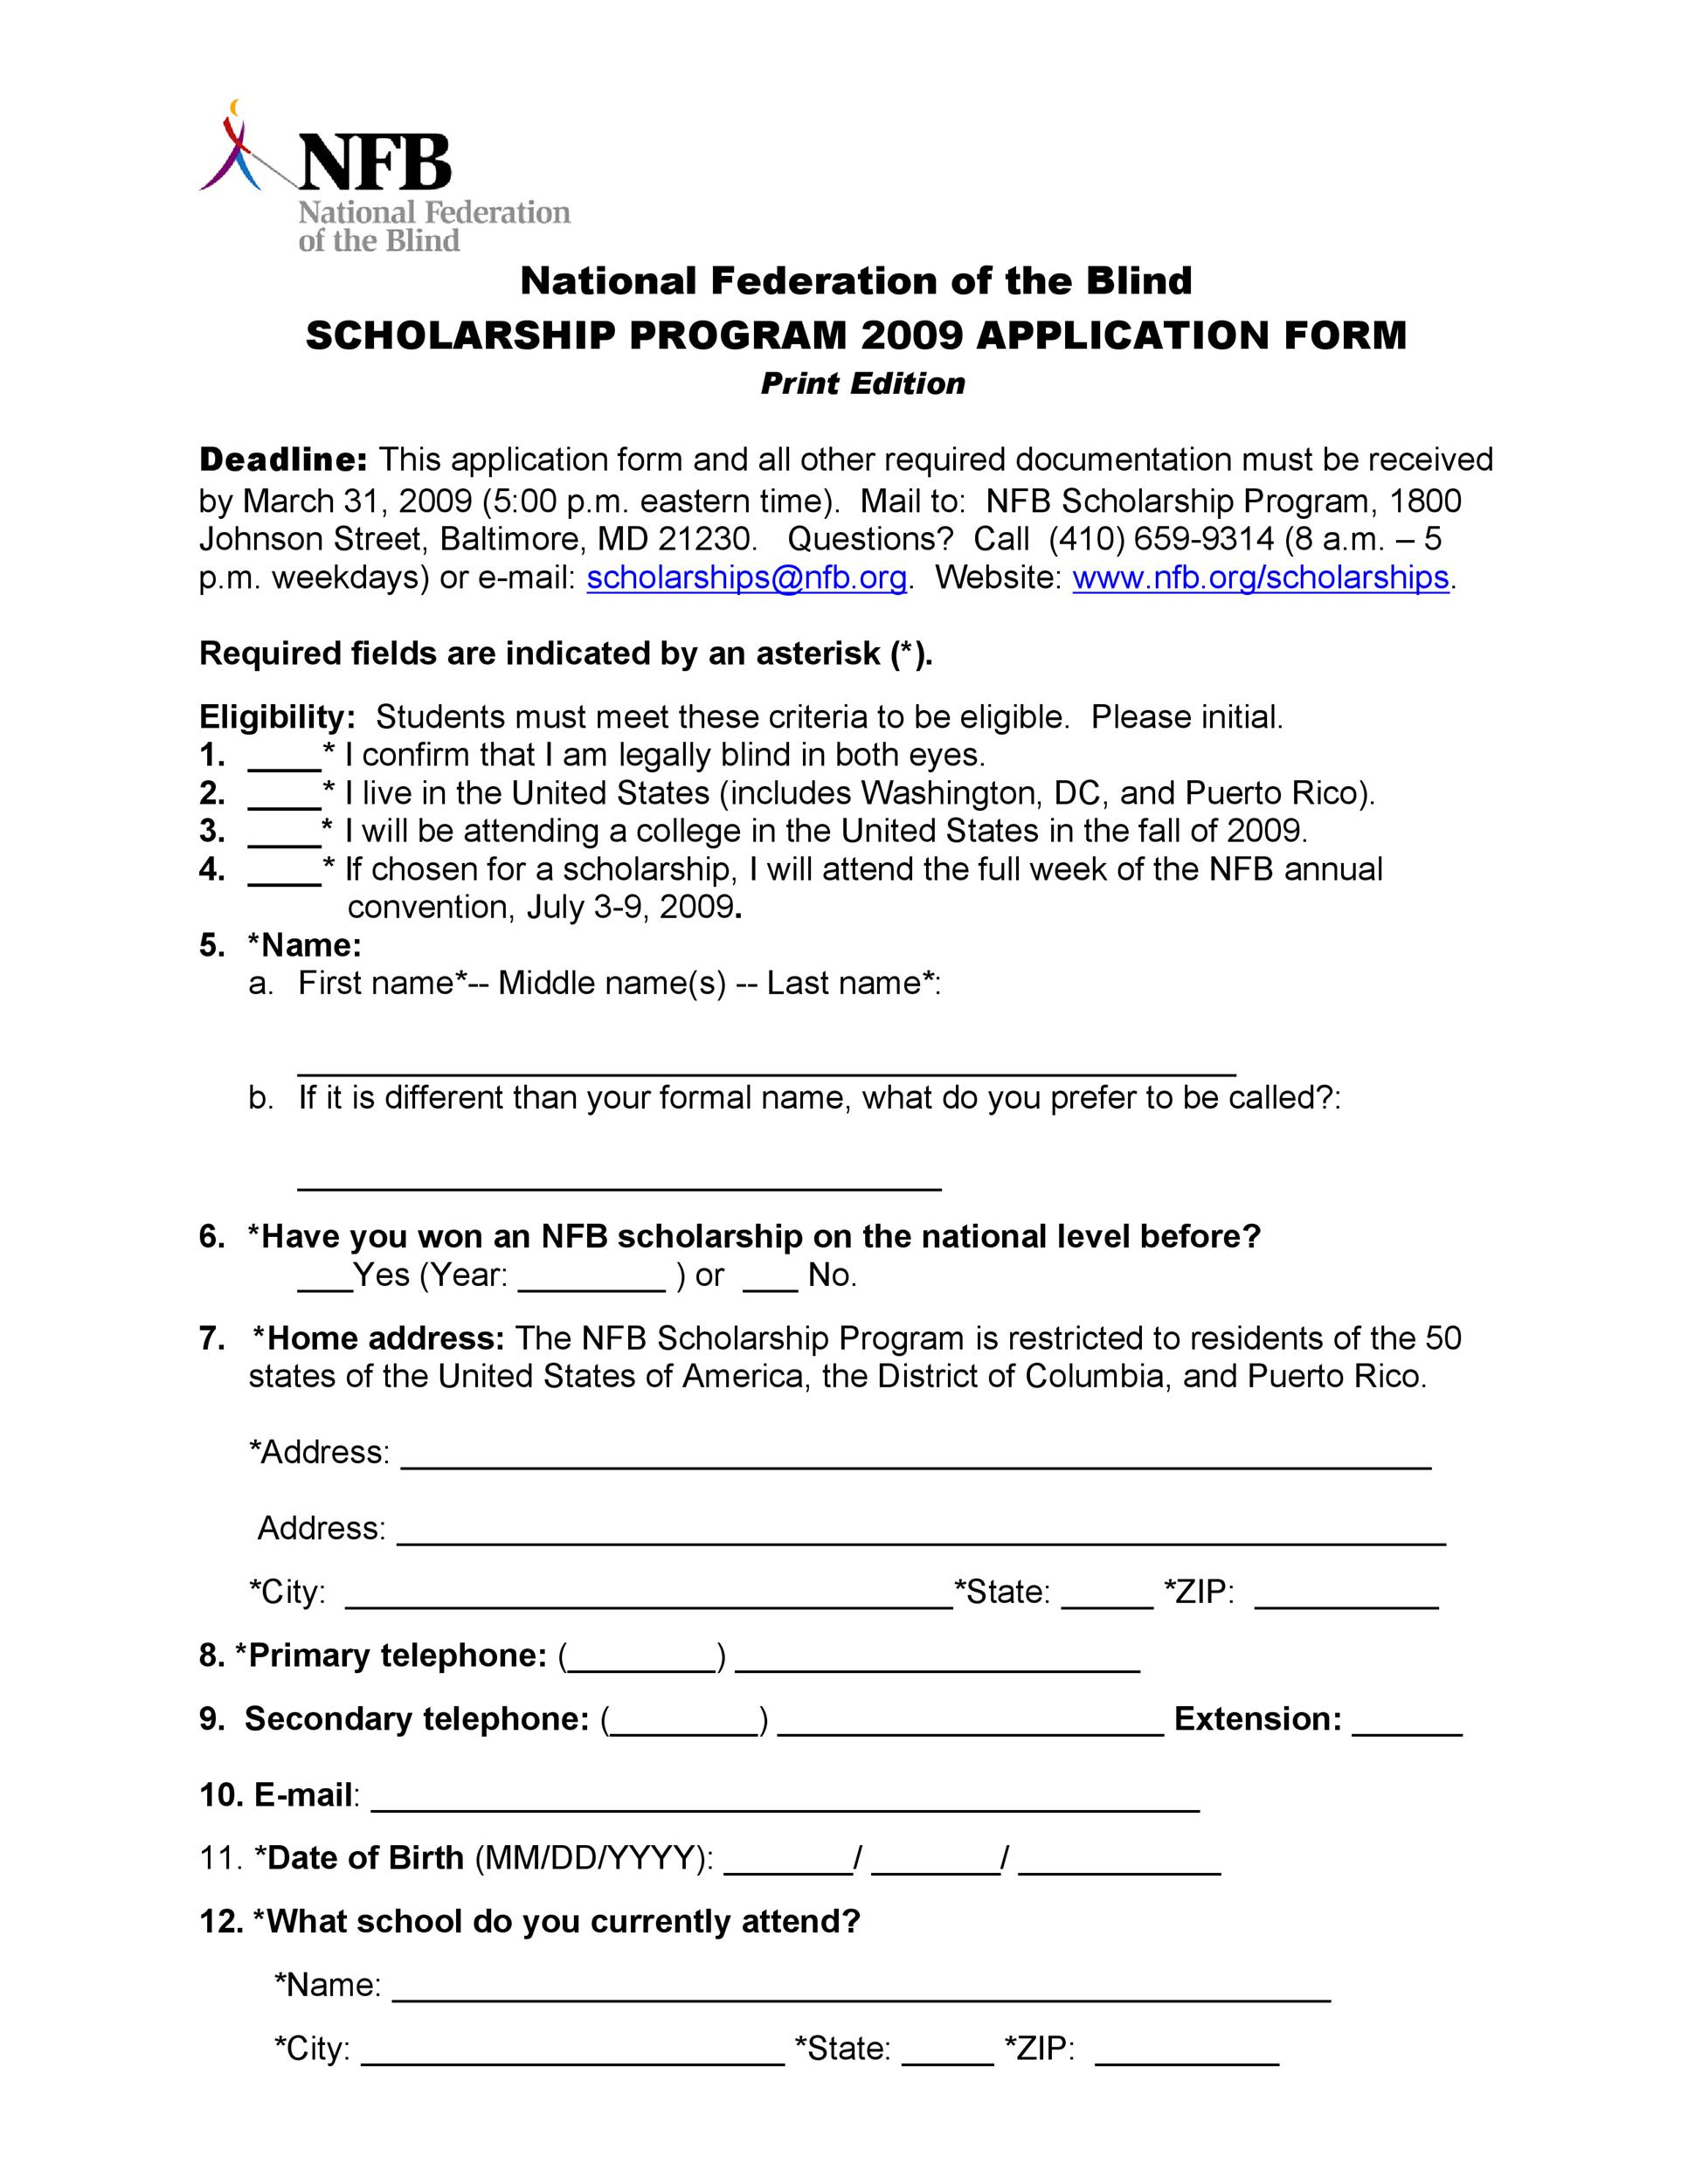 50 Free Scholarship Application Templates & Forms - Template Lab